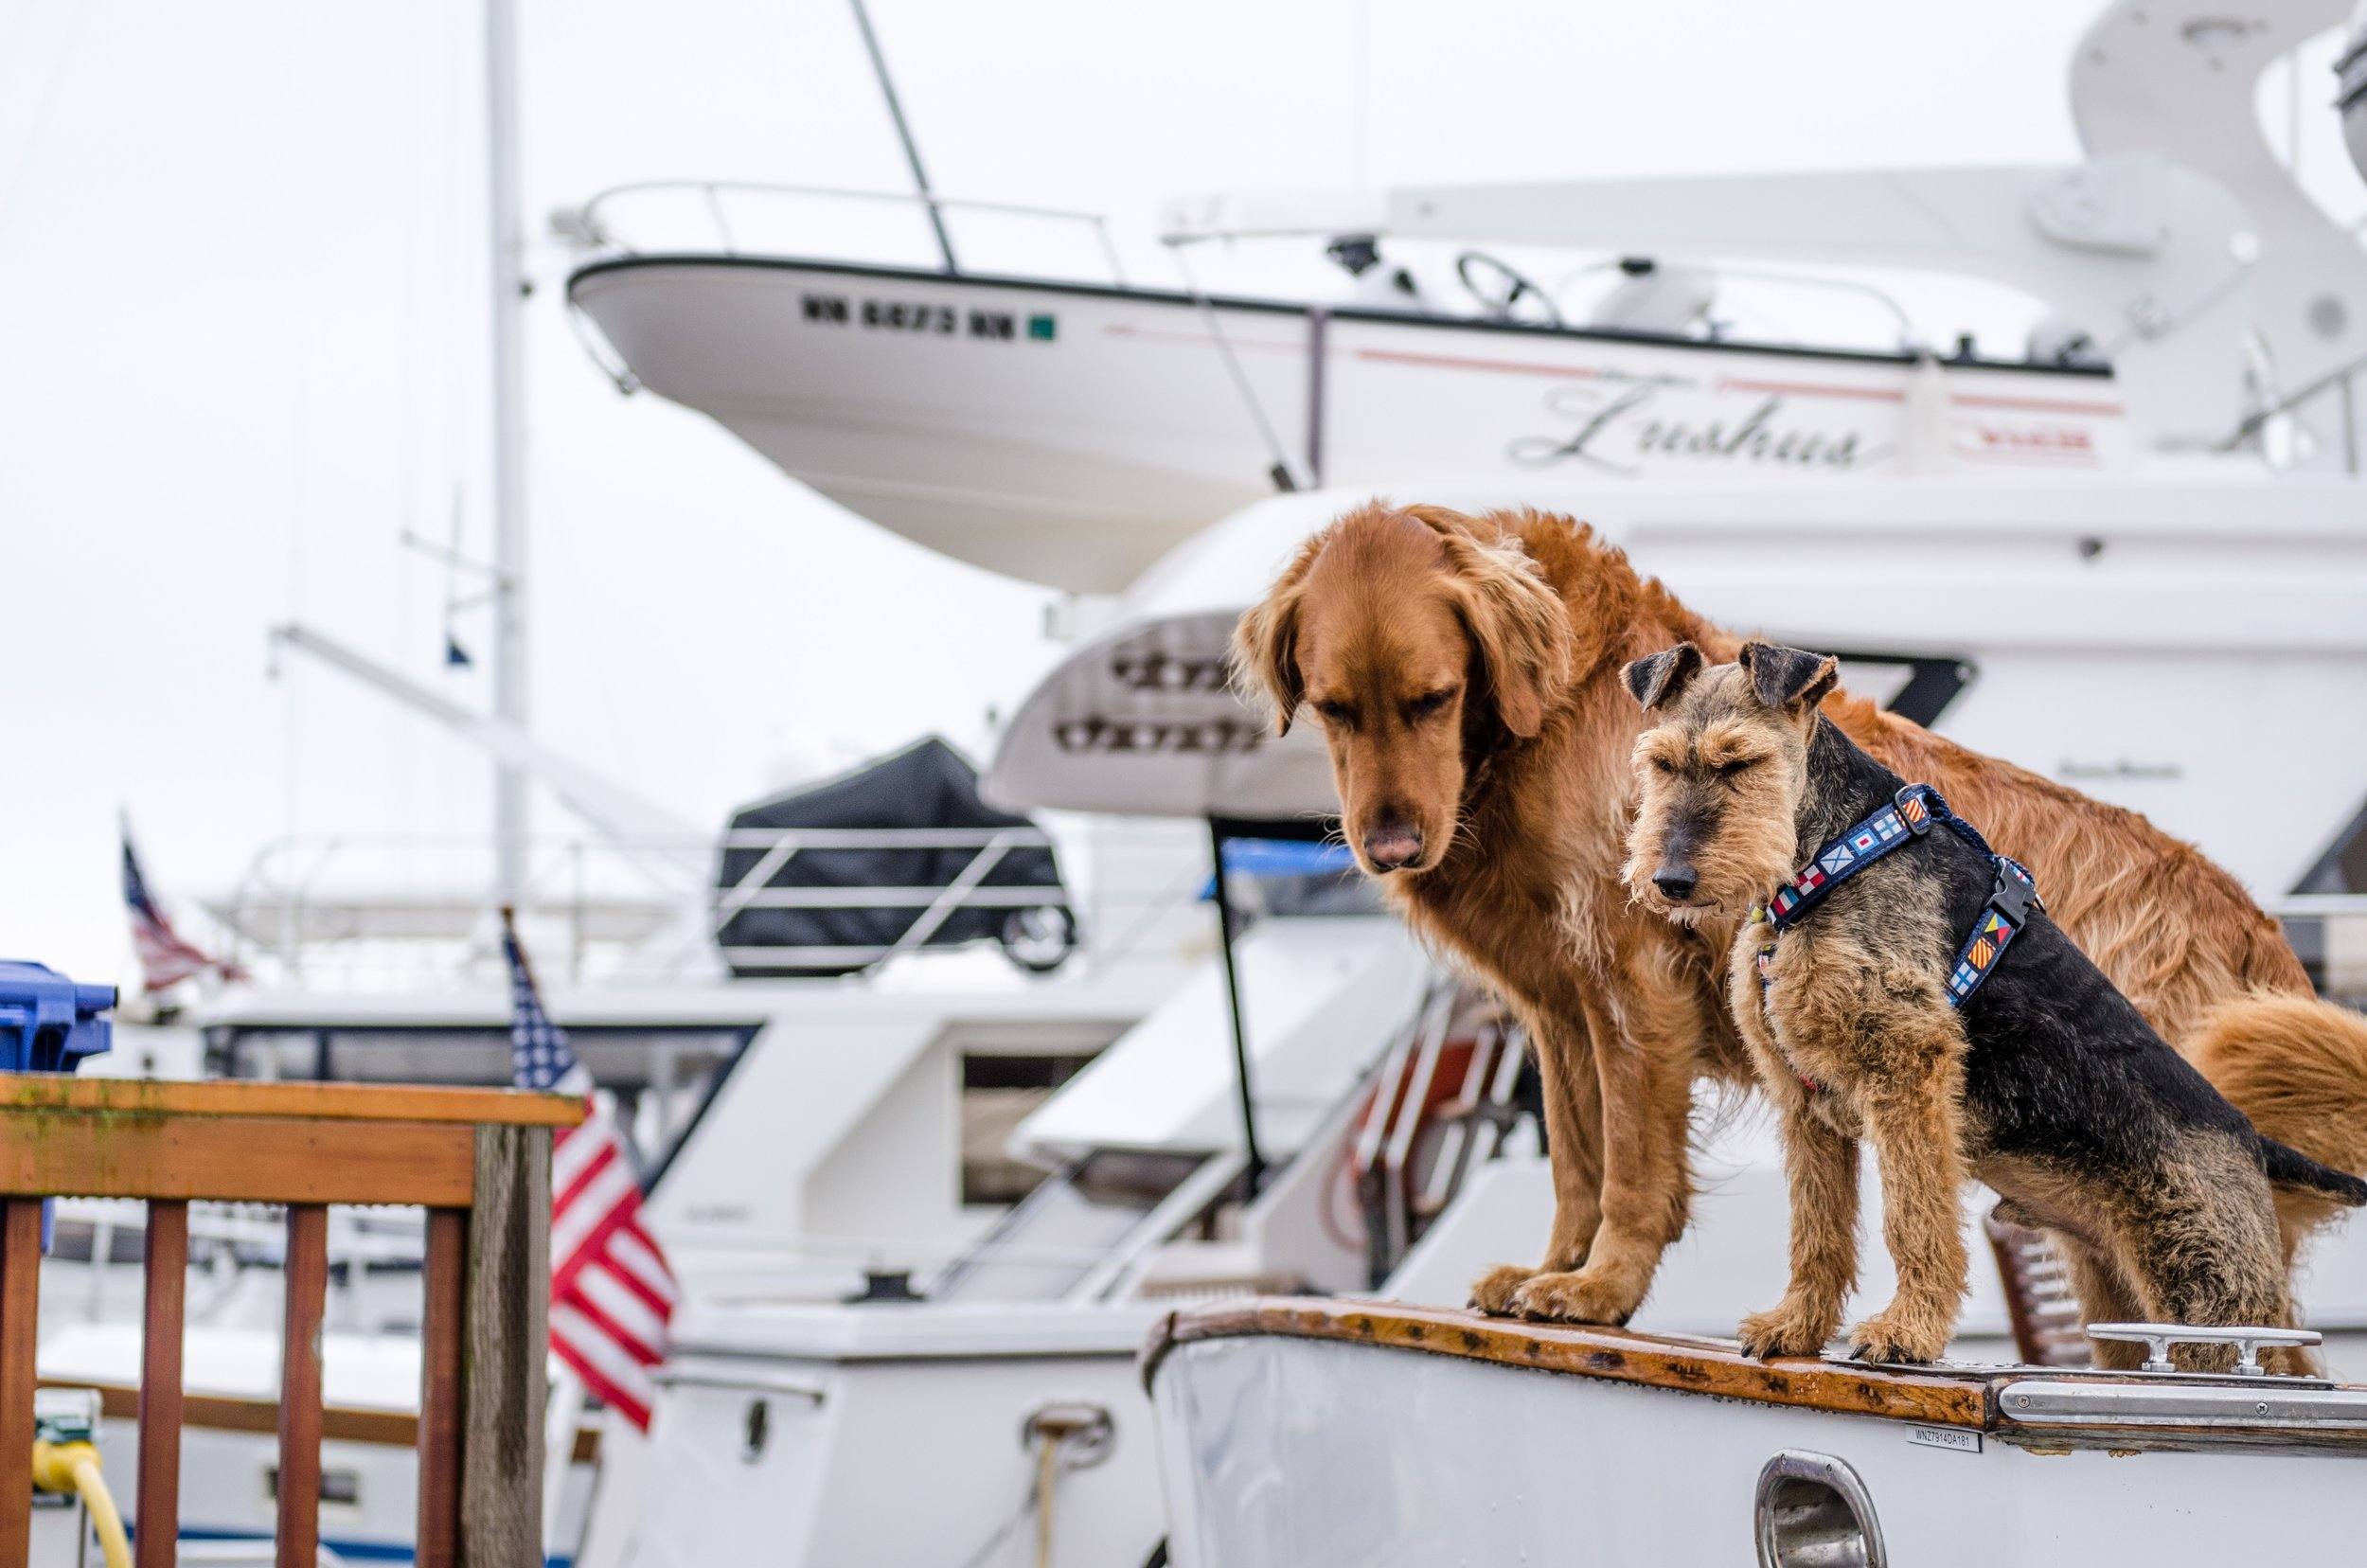 dogs on super yacht in marina.jpg